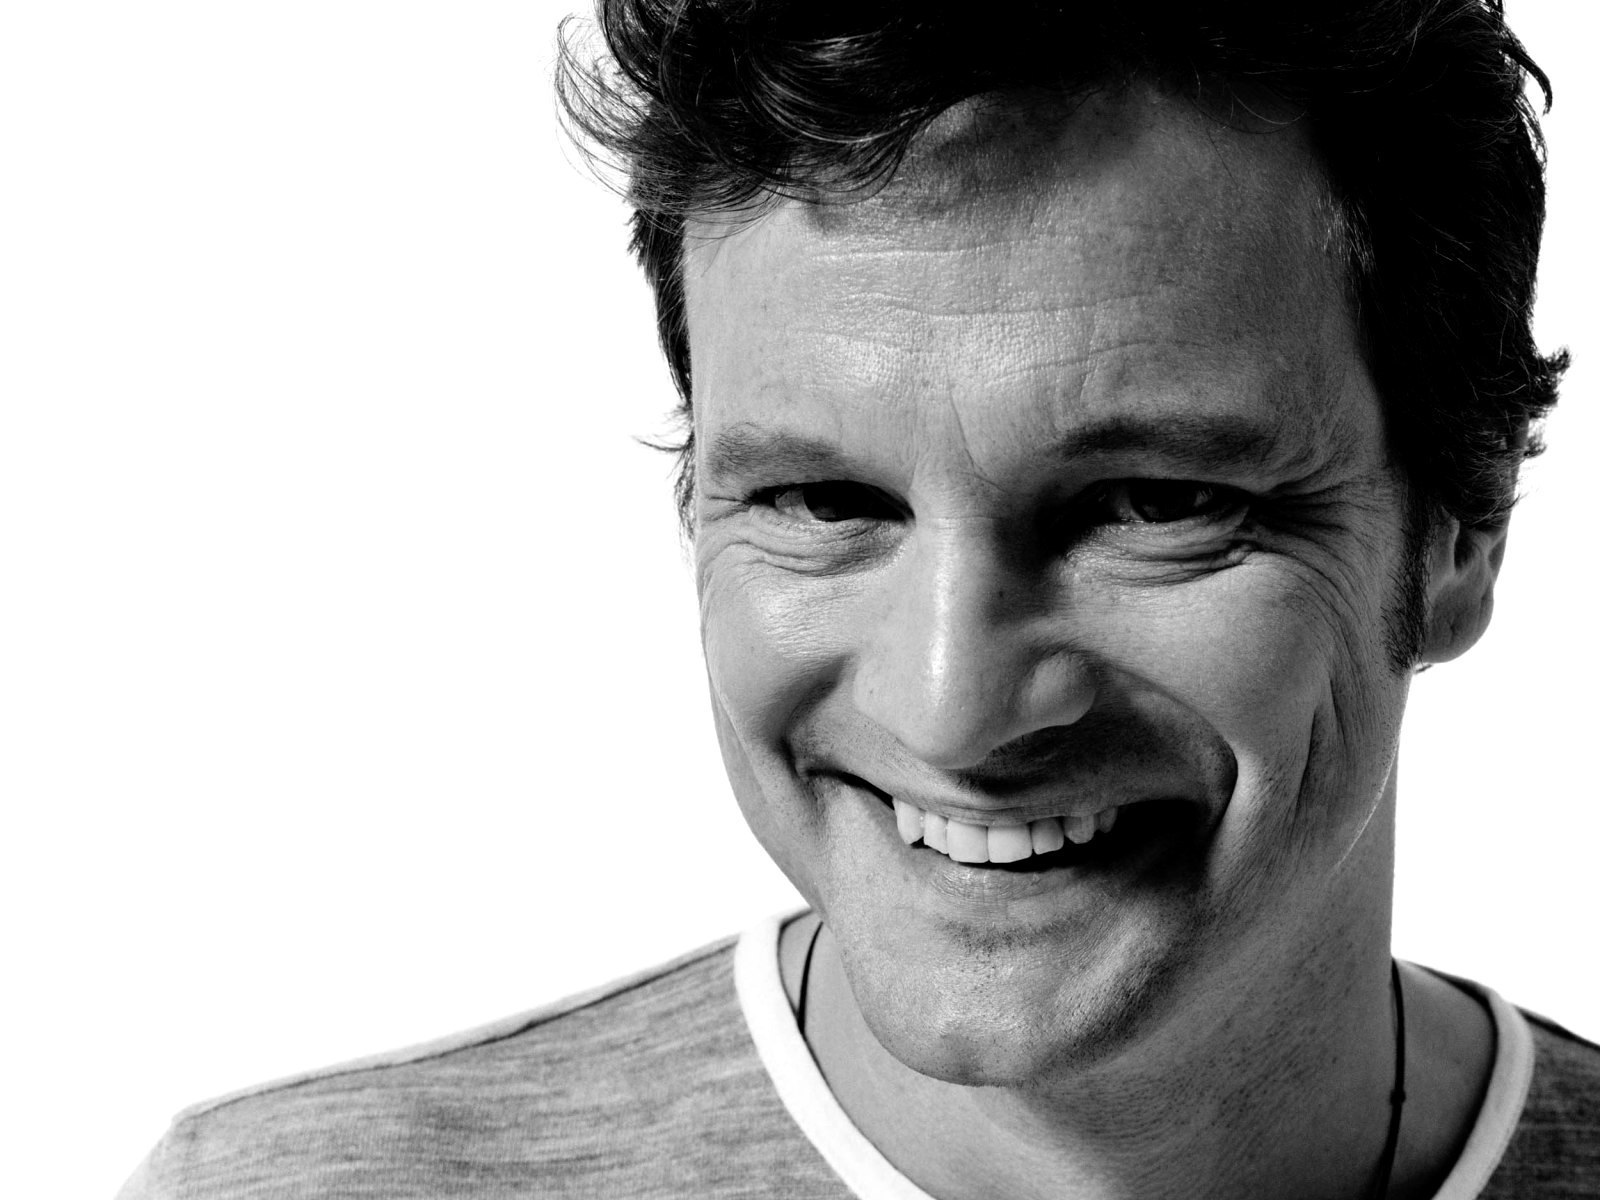 1600x1200 - Colin Firth Wallpapers 6